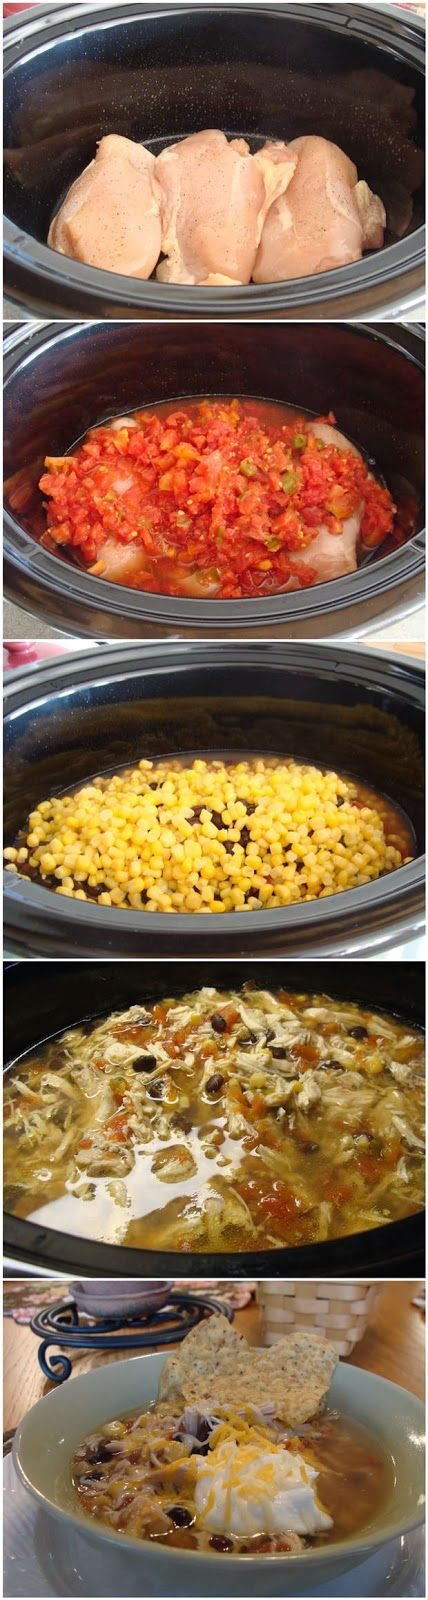 easy Crockpot Tortilla Soup